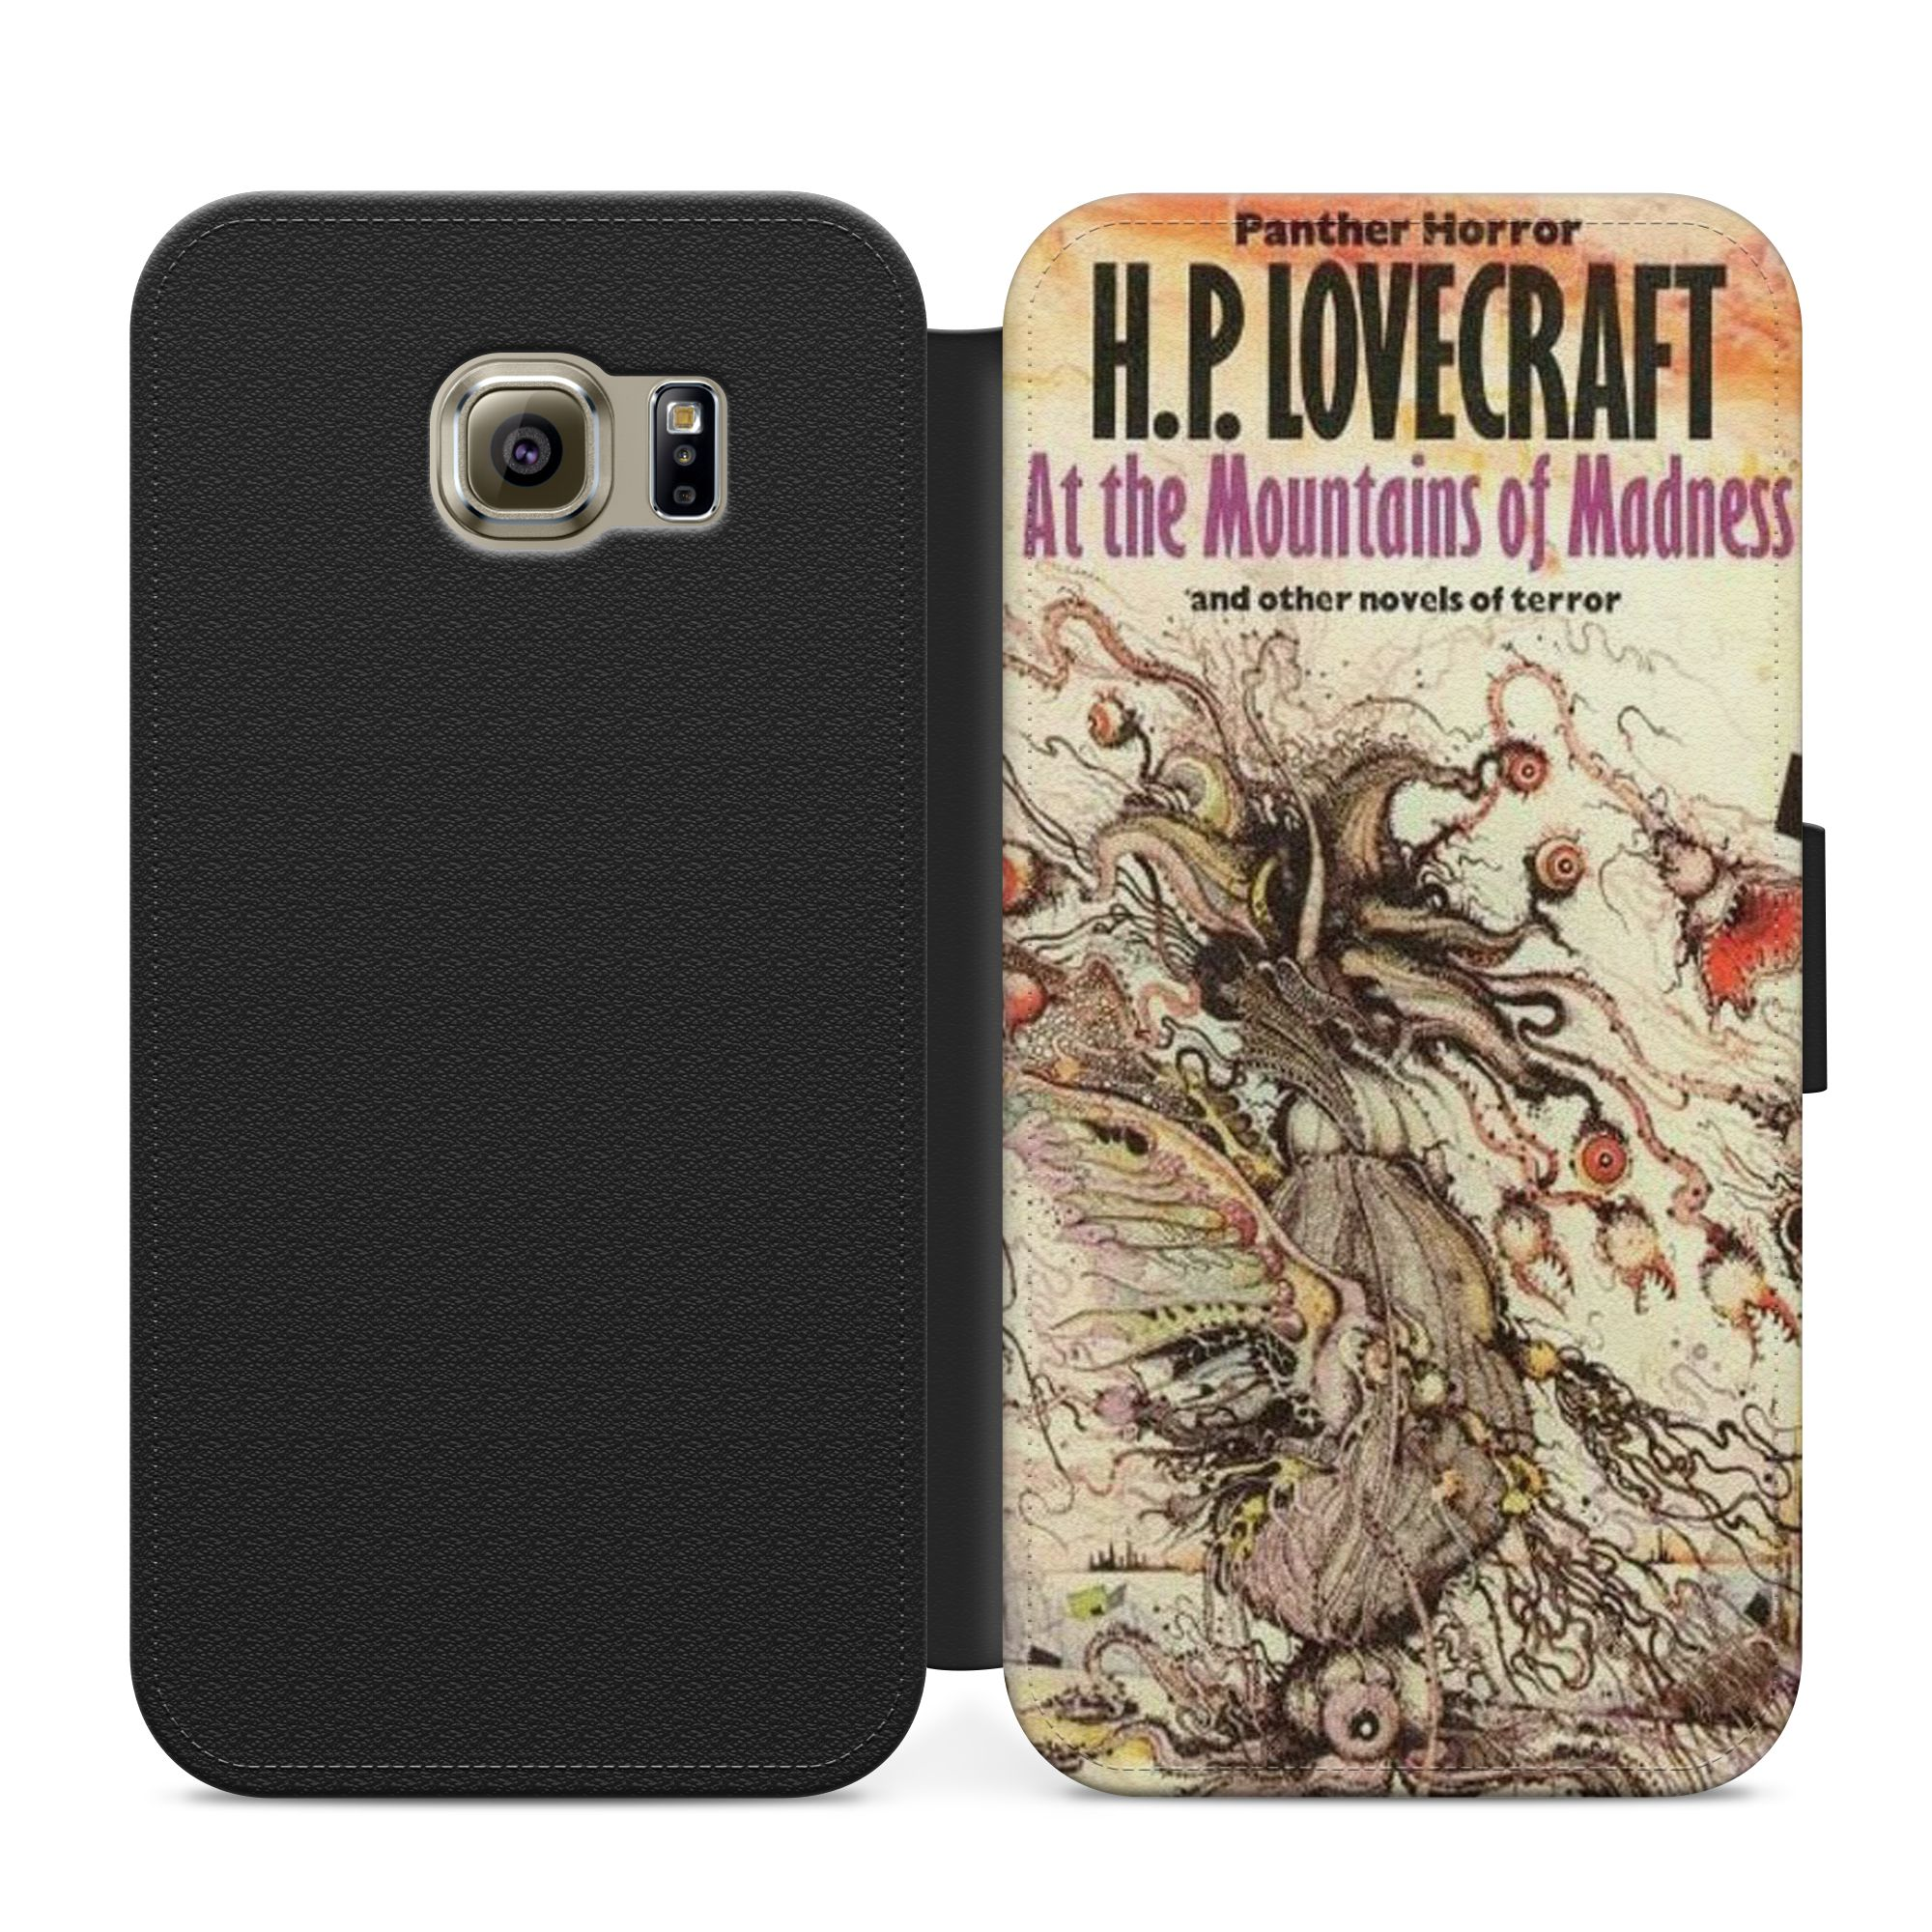 HP Lovecraft Mountains of Madness flip case for iphone 4/5/6/7/8 Samsung  S3/S4/S5/S6/S7/S8